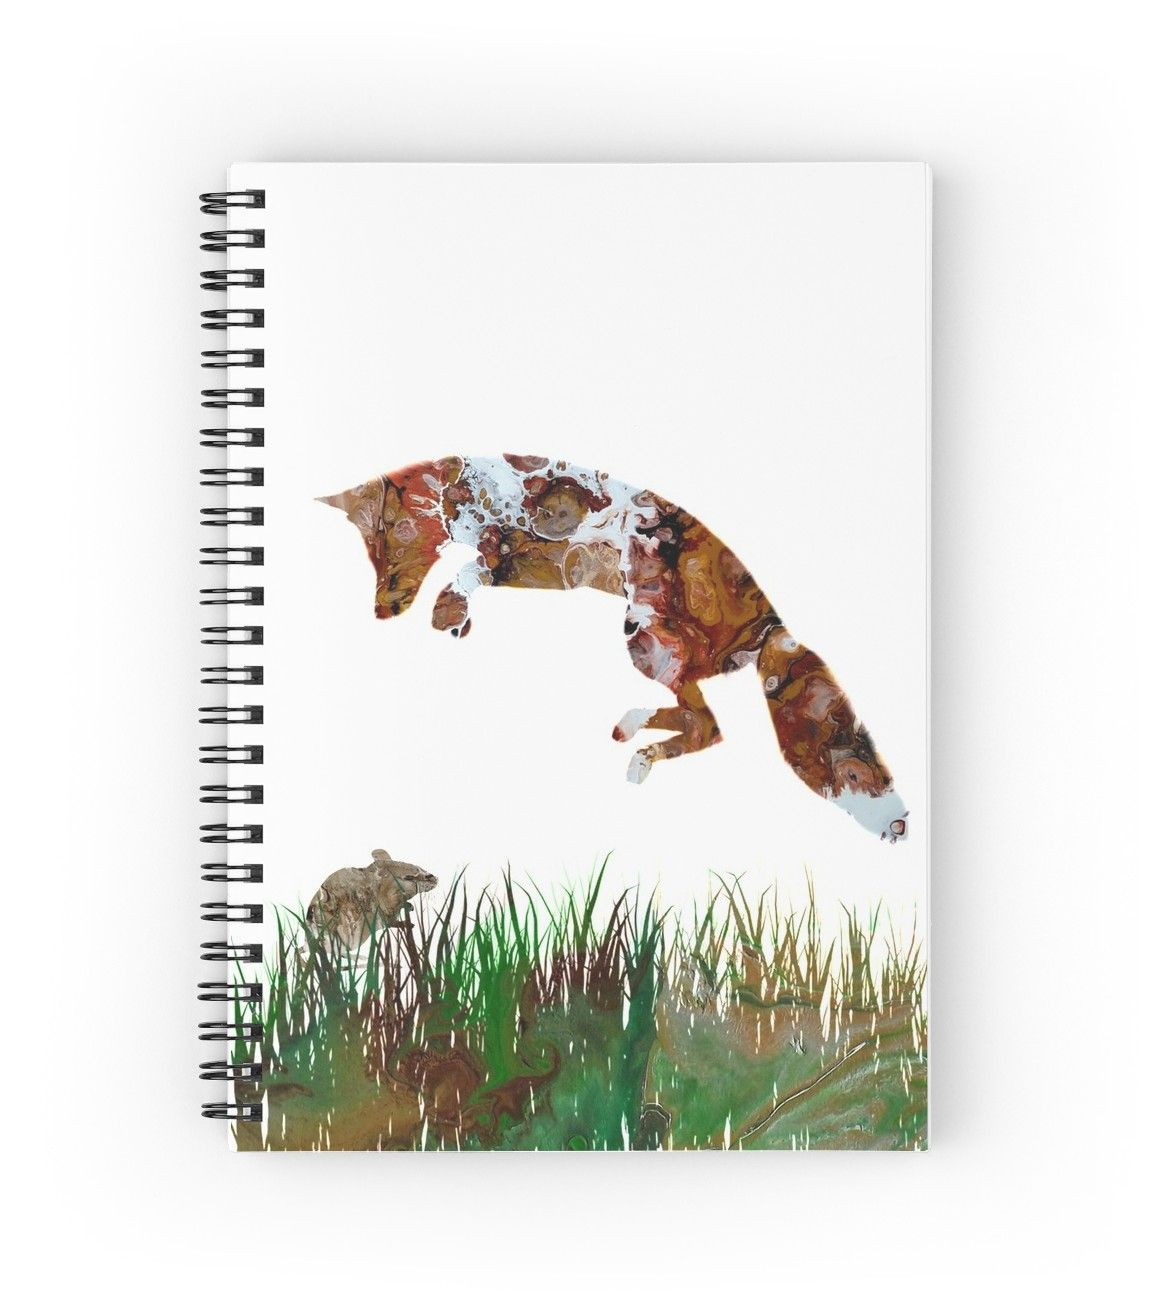 Jumping Hunting Fox And Mouse Abstract Fluid Acrylic Art Spiral Notebook By Colorflowart Acrylic Art Fluid Acrylics Abstract